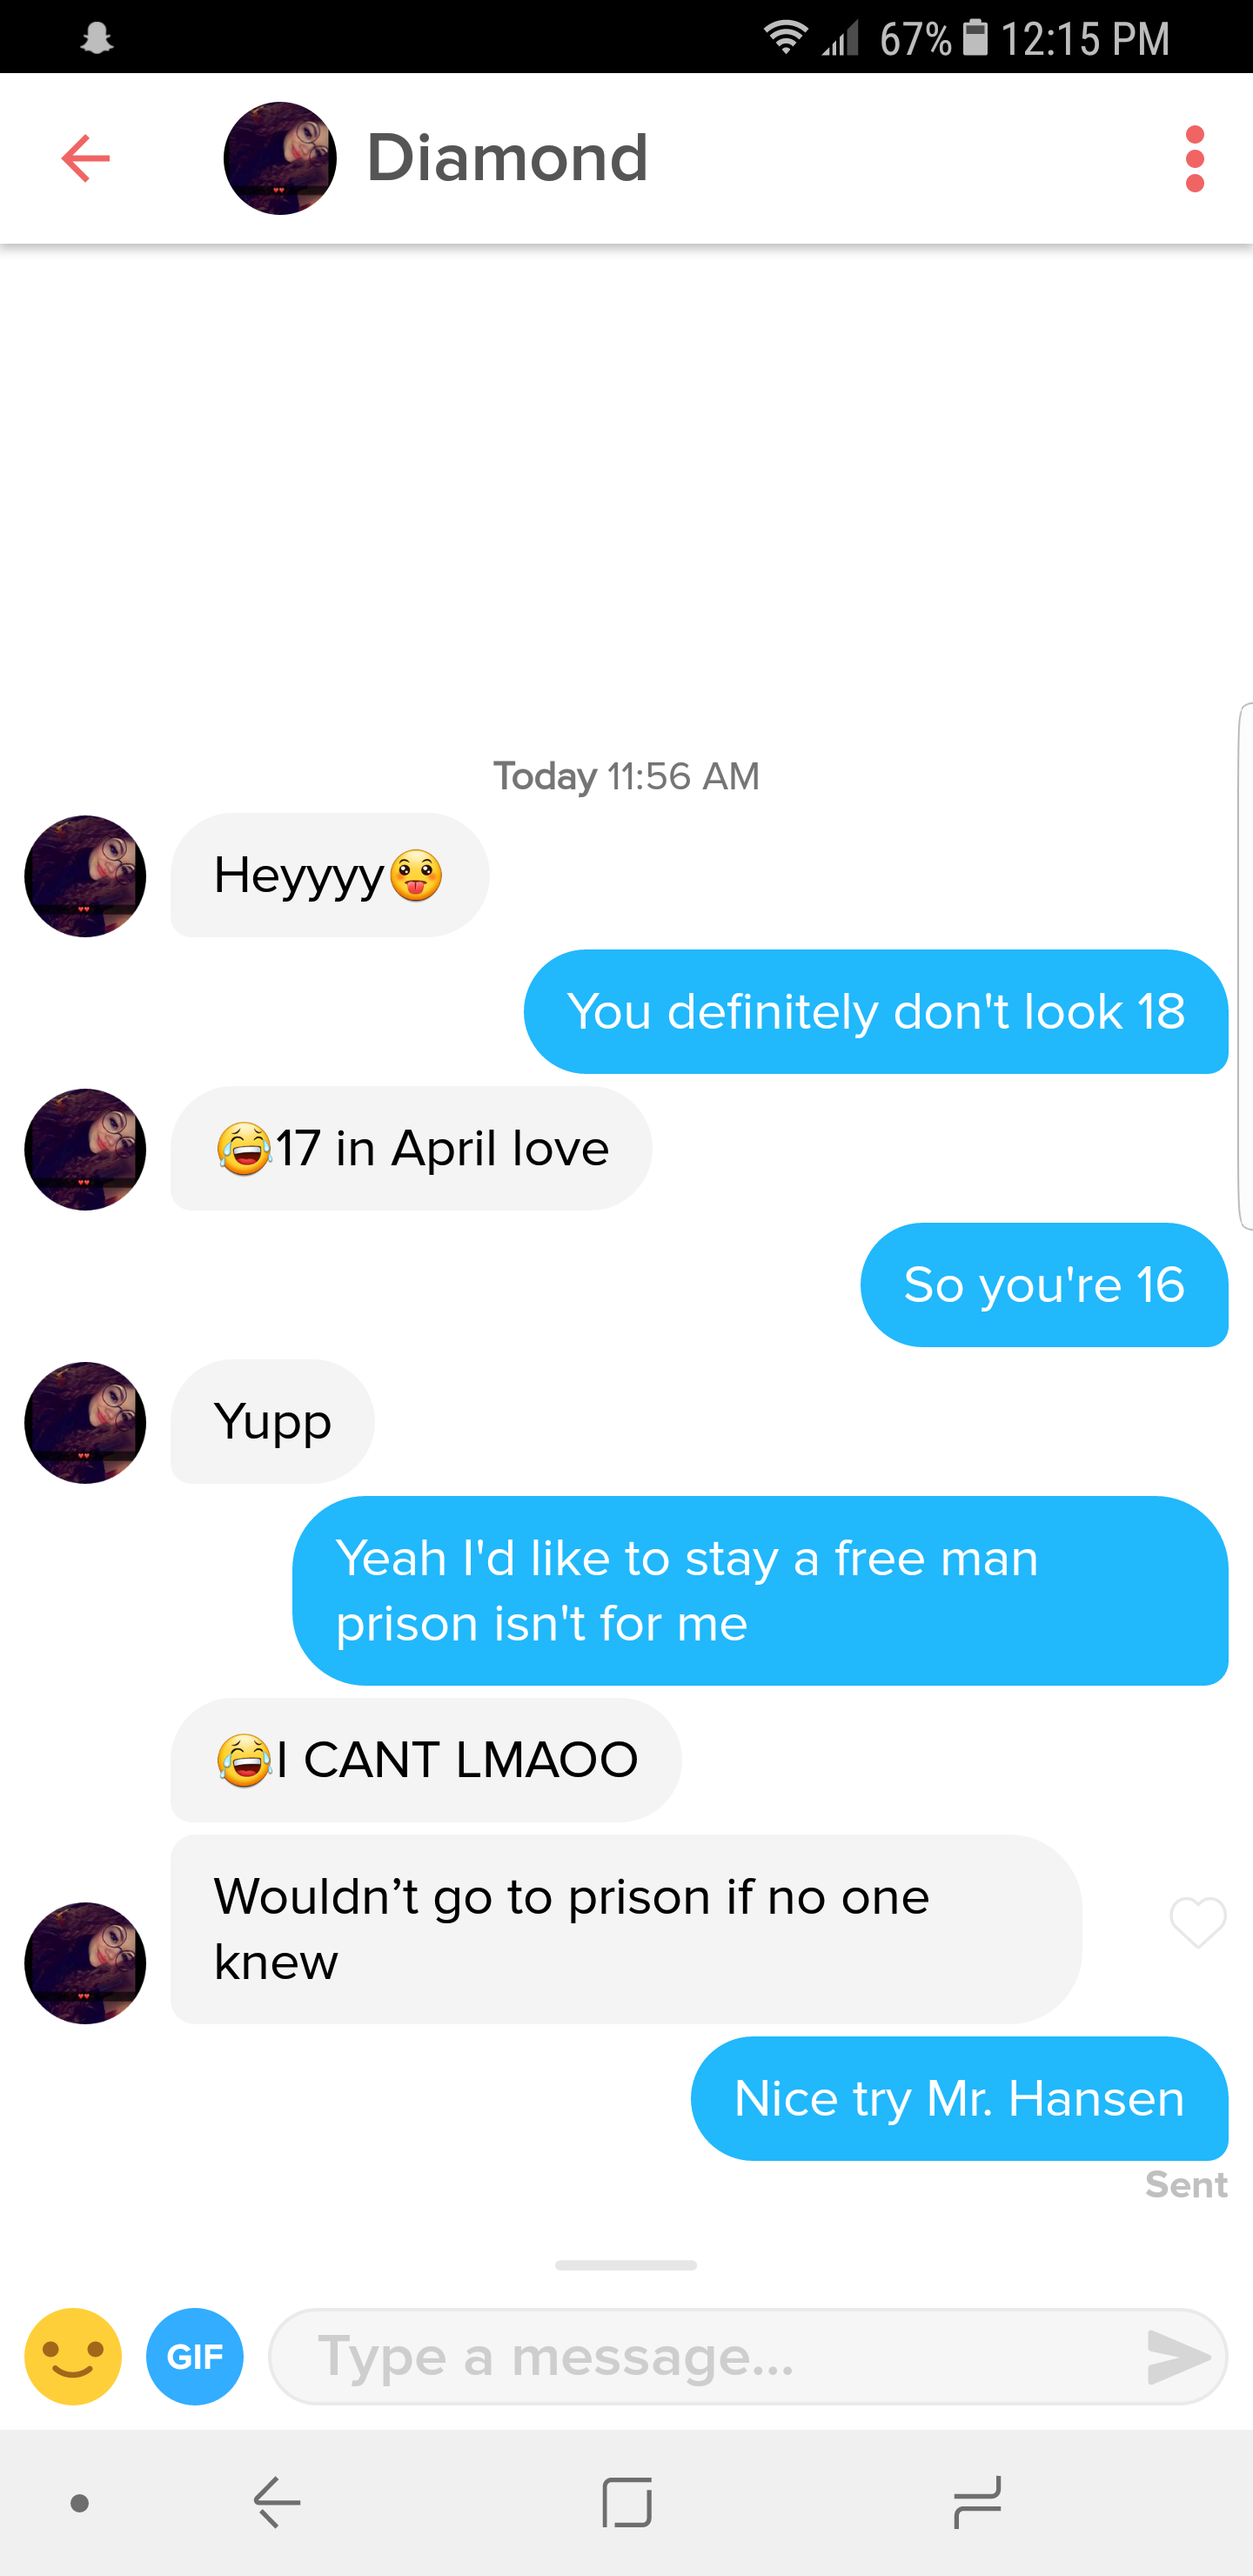 She's legal somewhere in the world